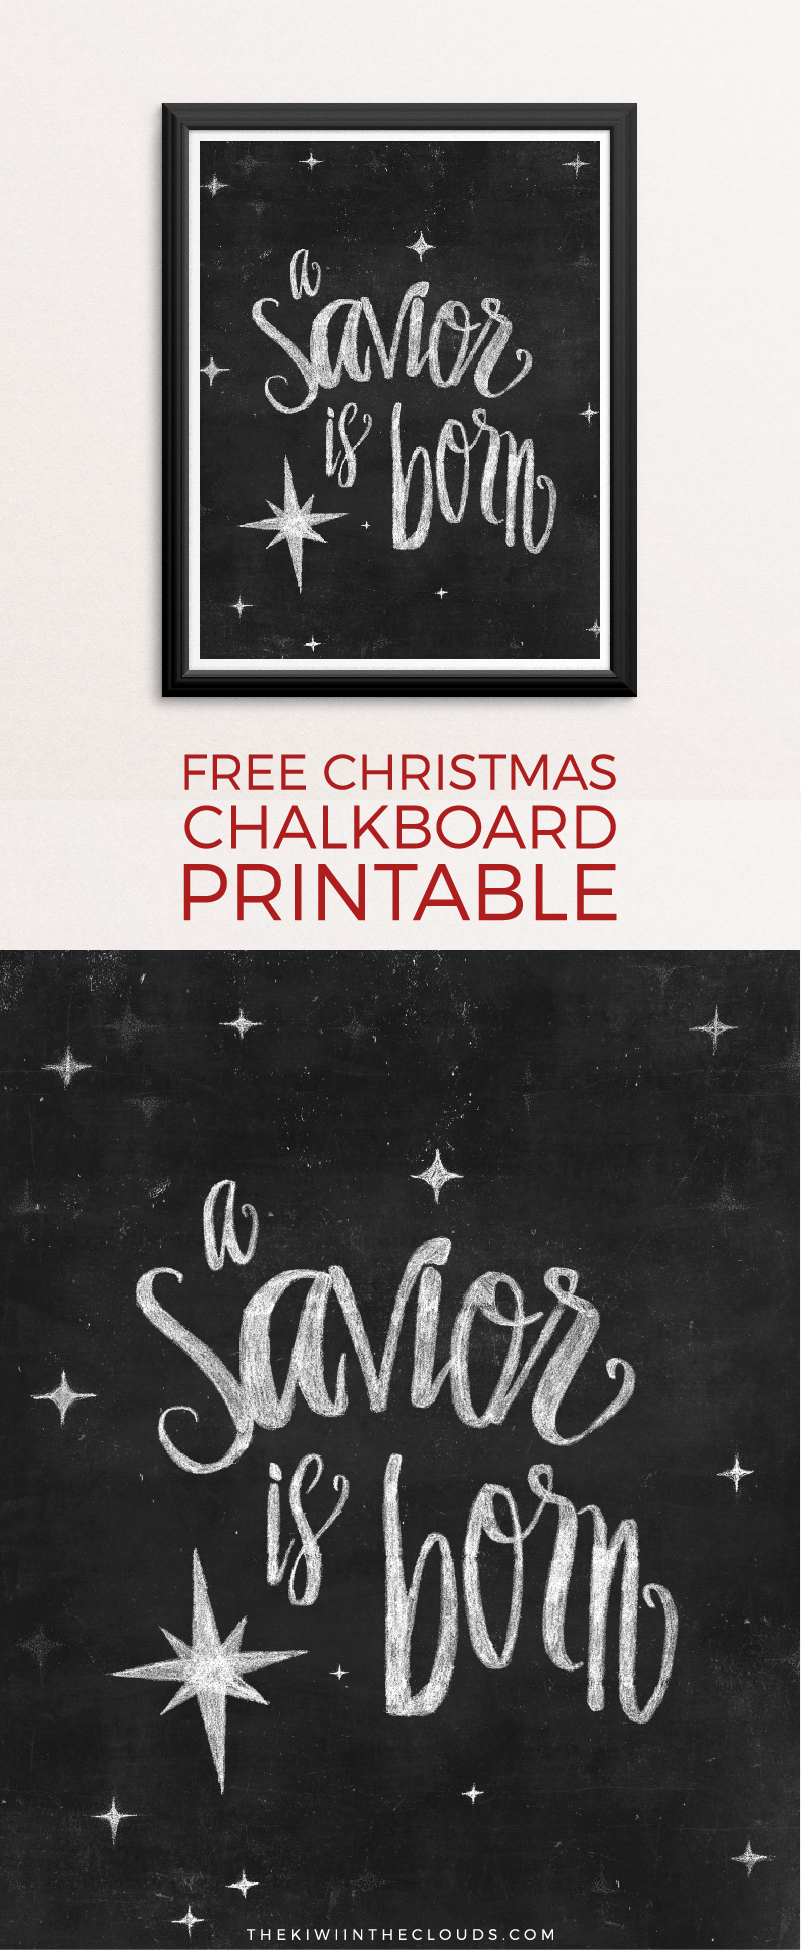 A Christmas Free Printable That Will Remind You Of The ...